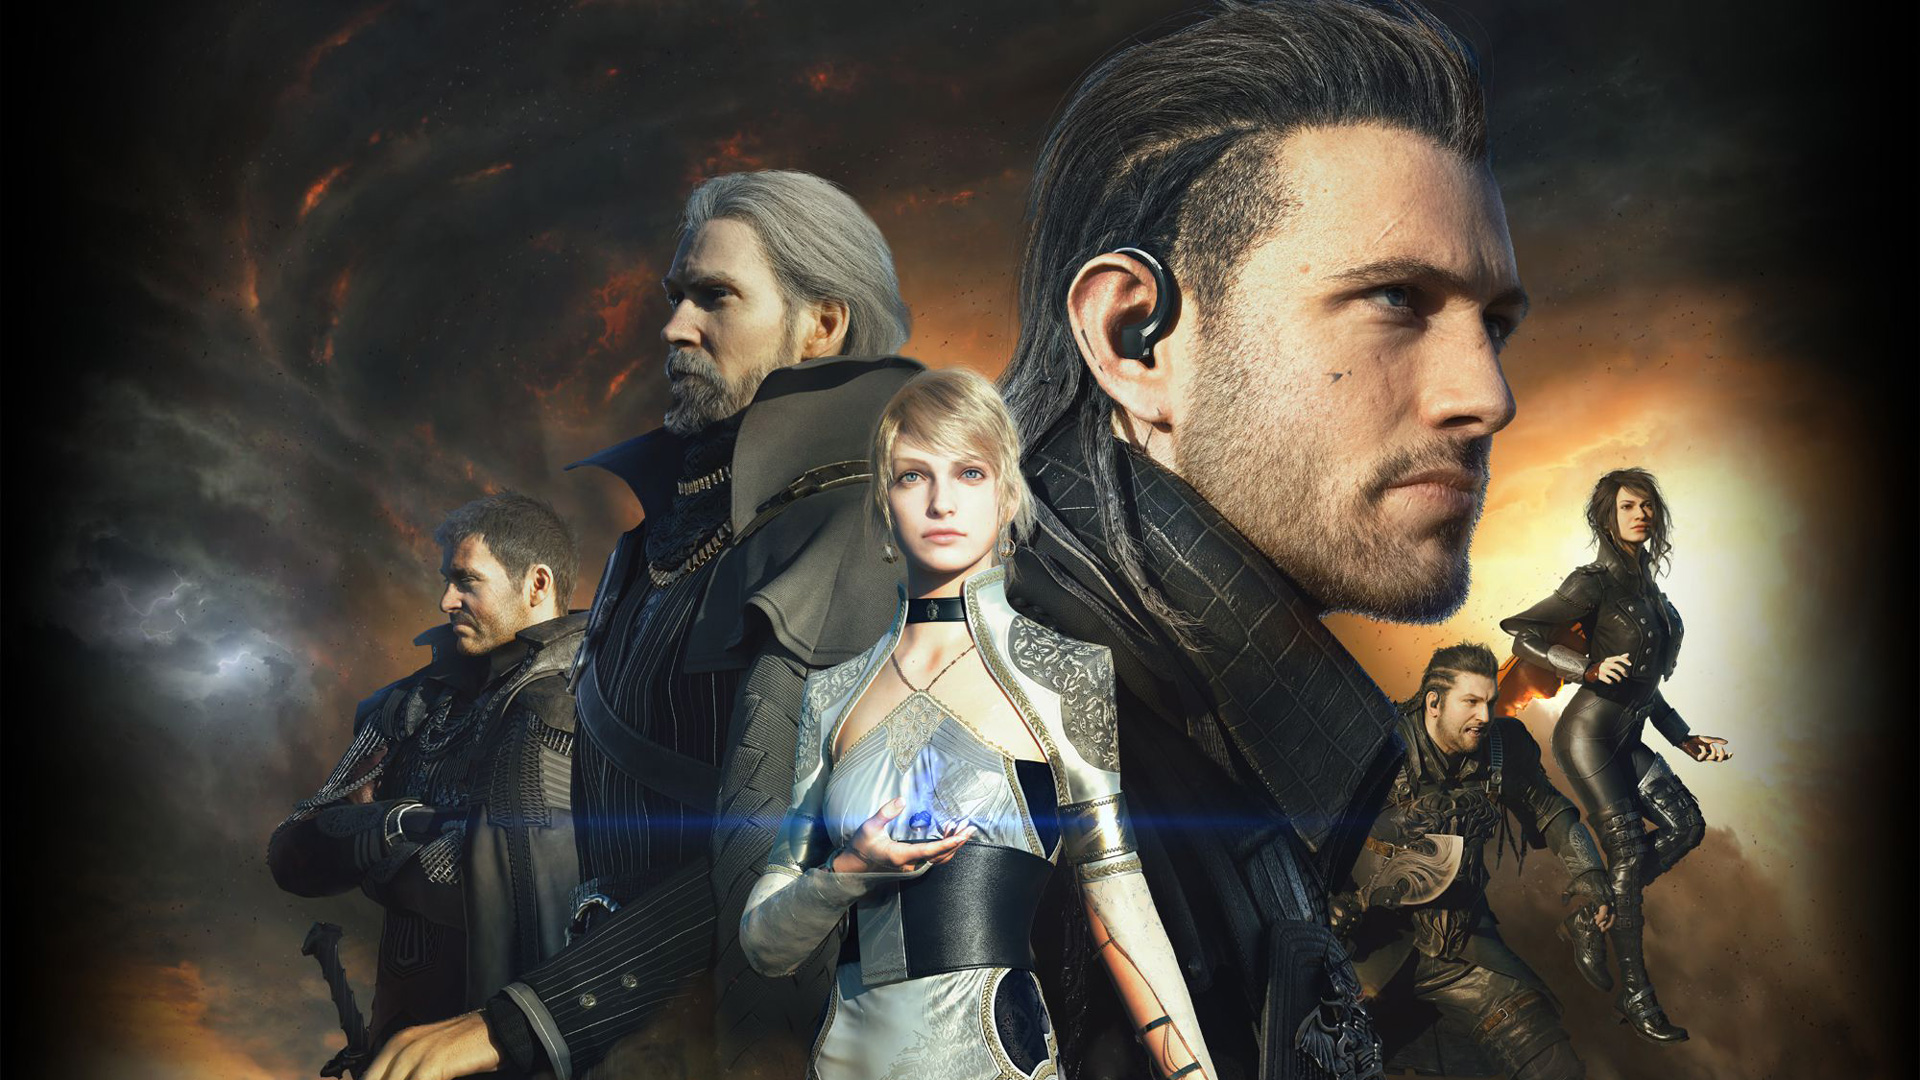 Final Fantasy Xv 4k Wallpapers: Kingsglaive Final Fantasy XV, HD Movies, 4k Wallpapers